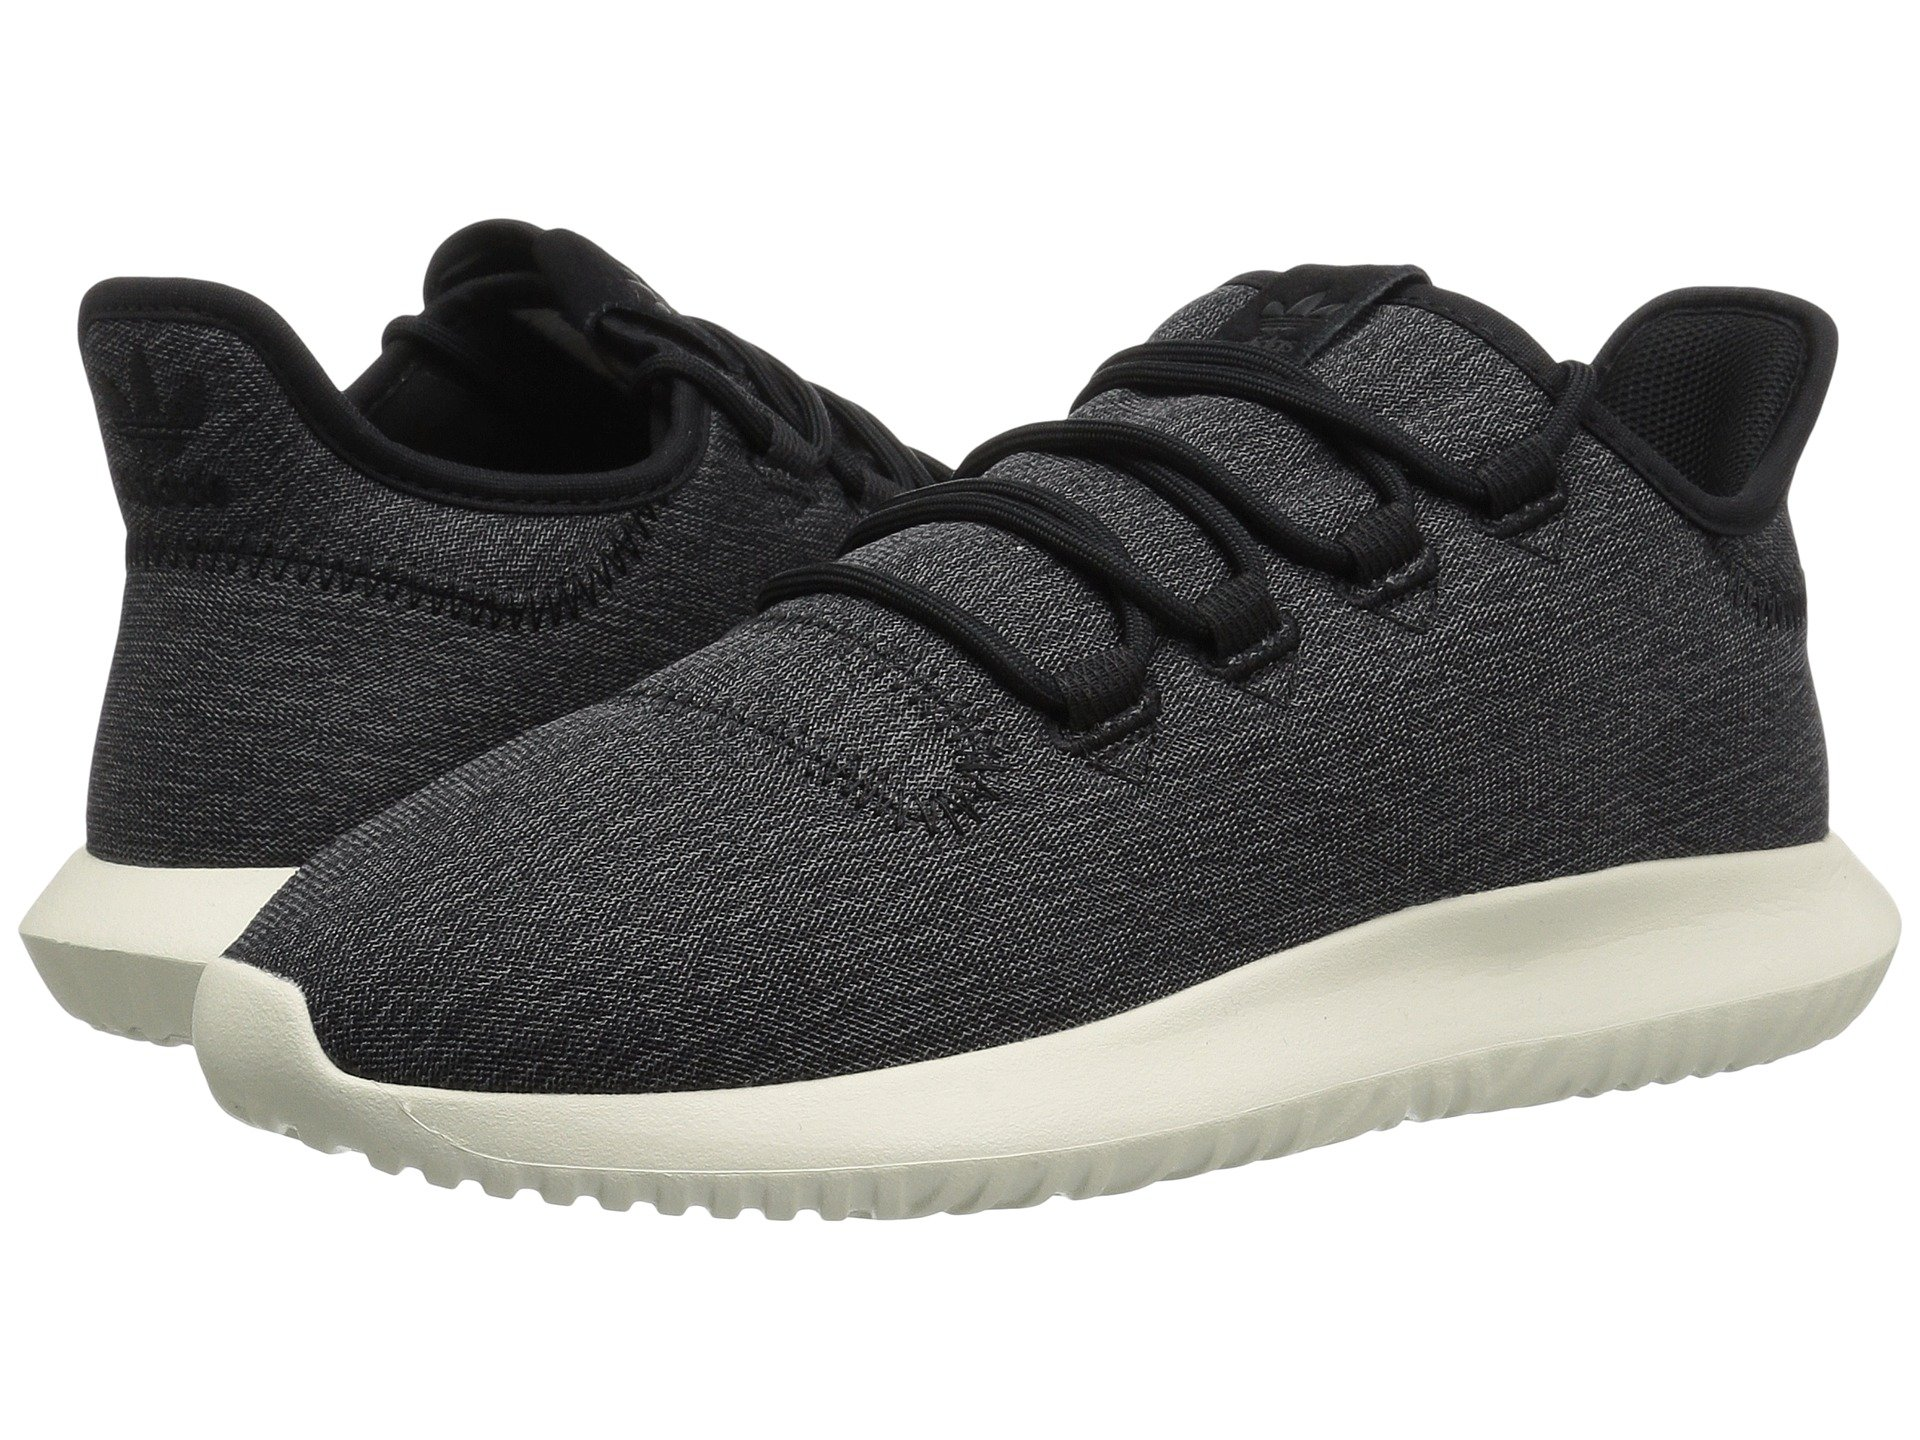 Cheap Adidas Tubular Rise Buy it now at the Afew Sneaker Store